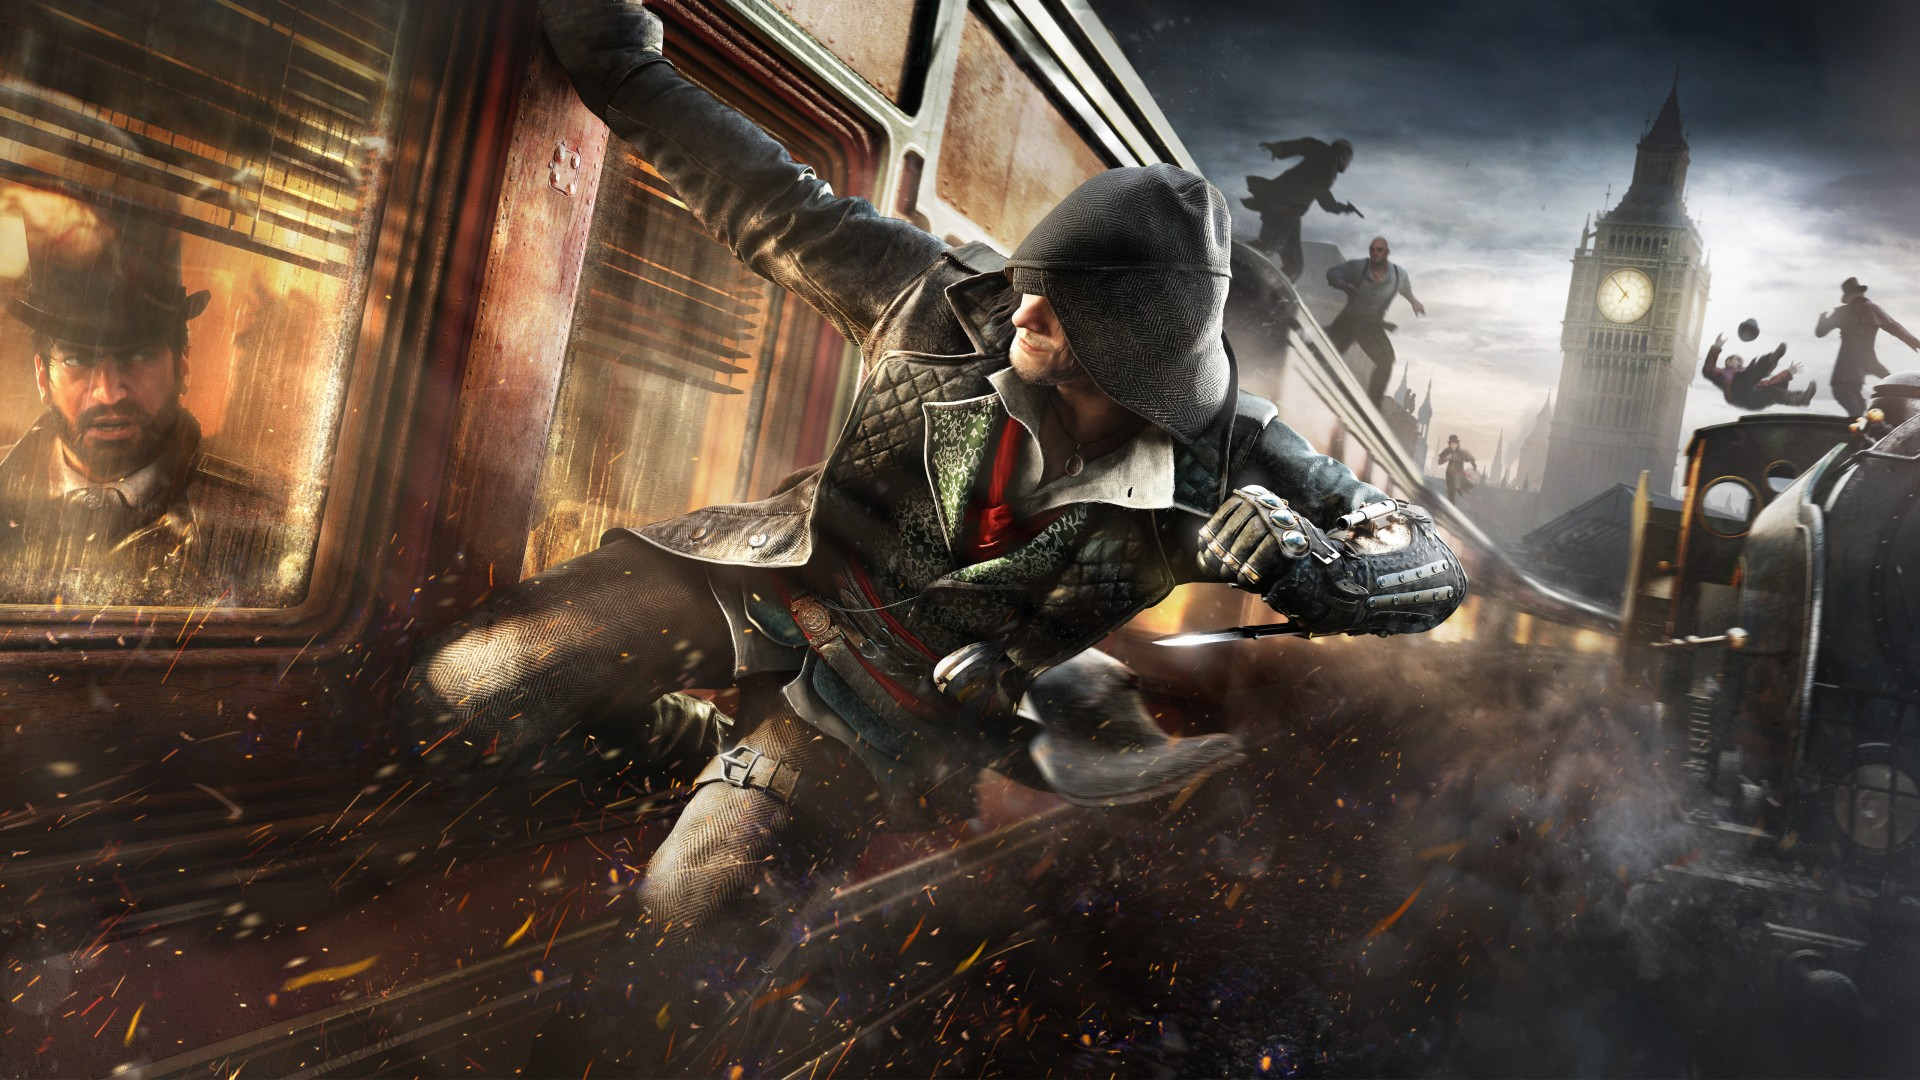 4. Assassin's Creed Syndicate